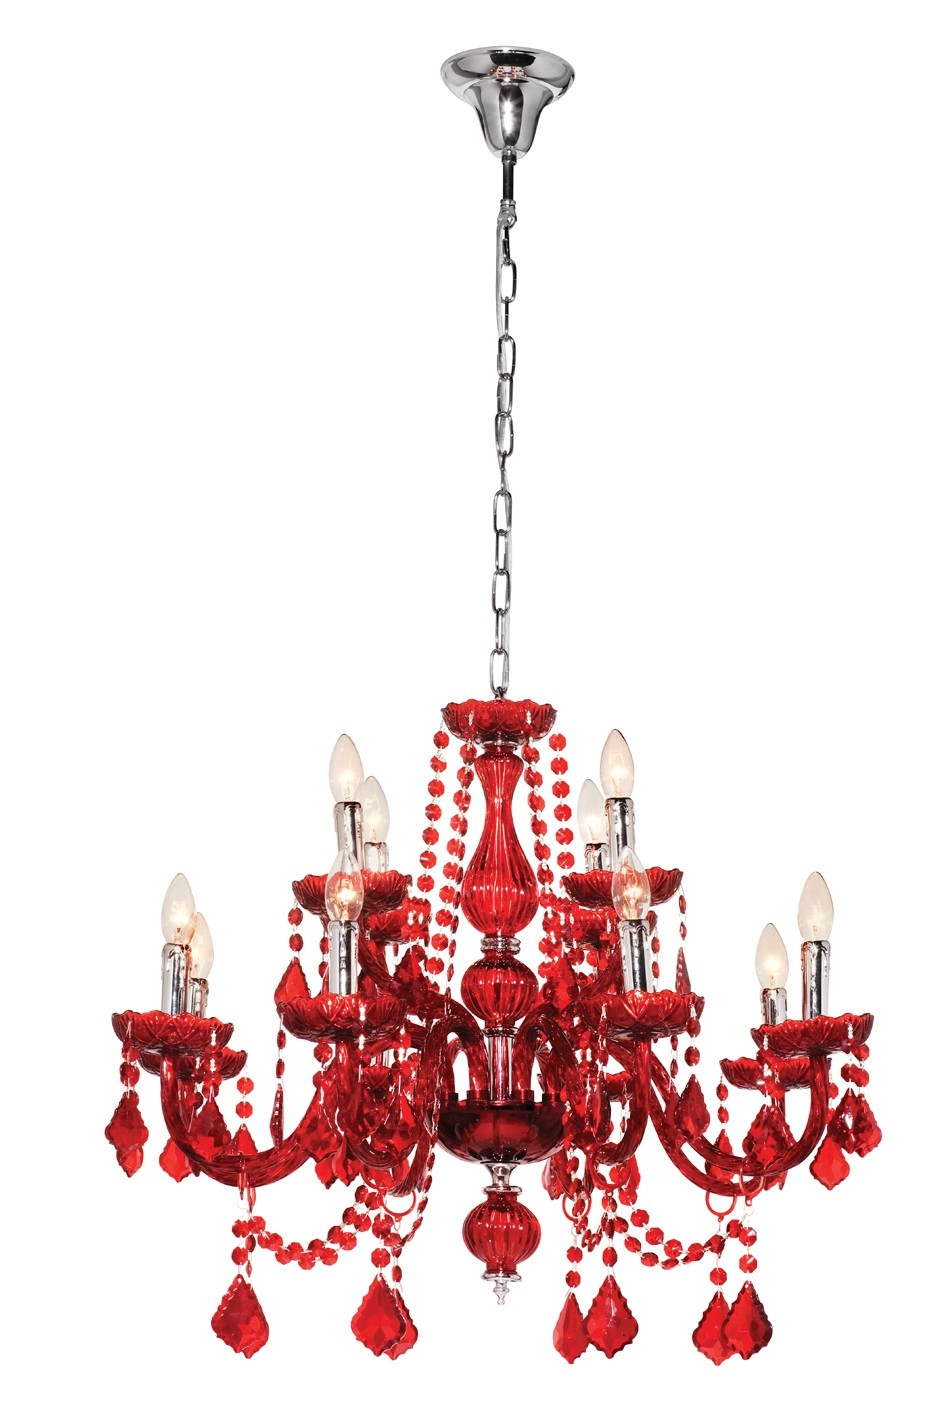 Toledo Red Chandelier Chandeliers Indoor Lighting Intended For Red Chandeliers (Image 15 of 15)